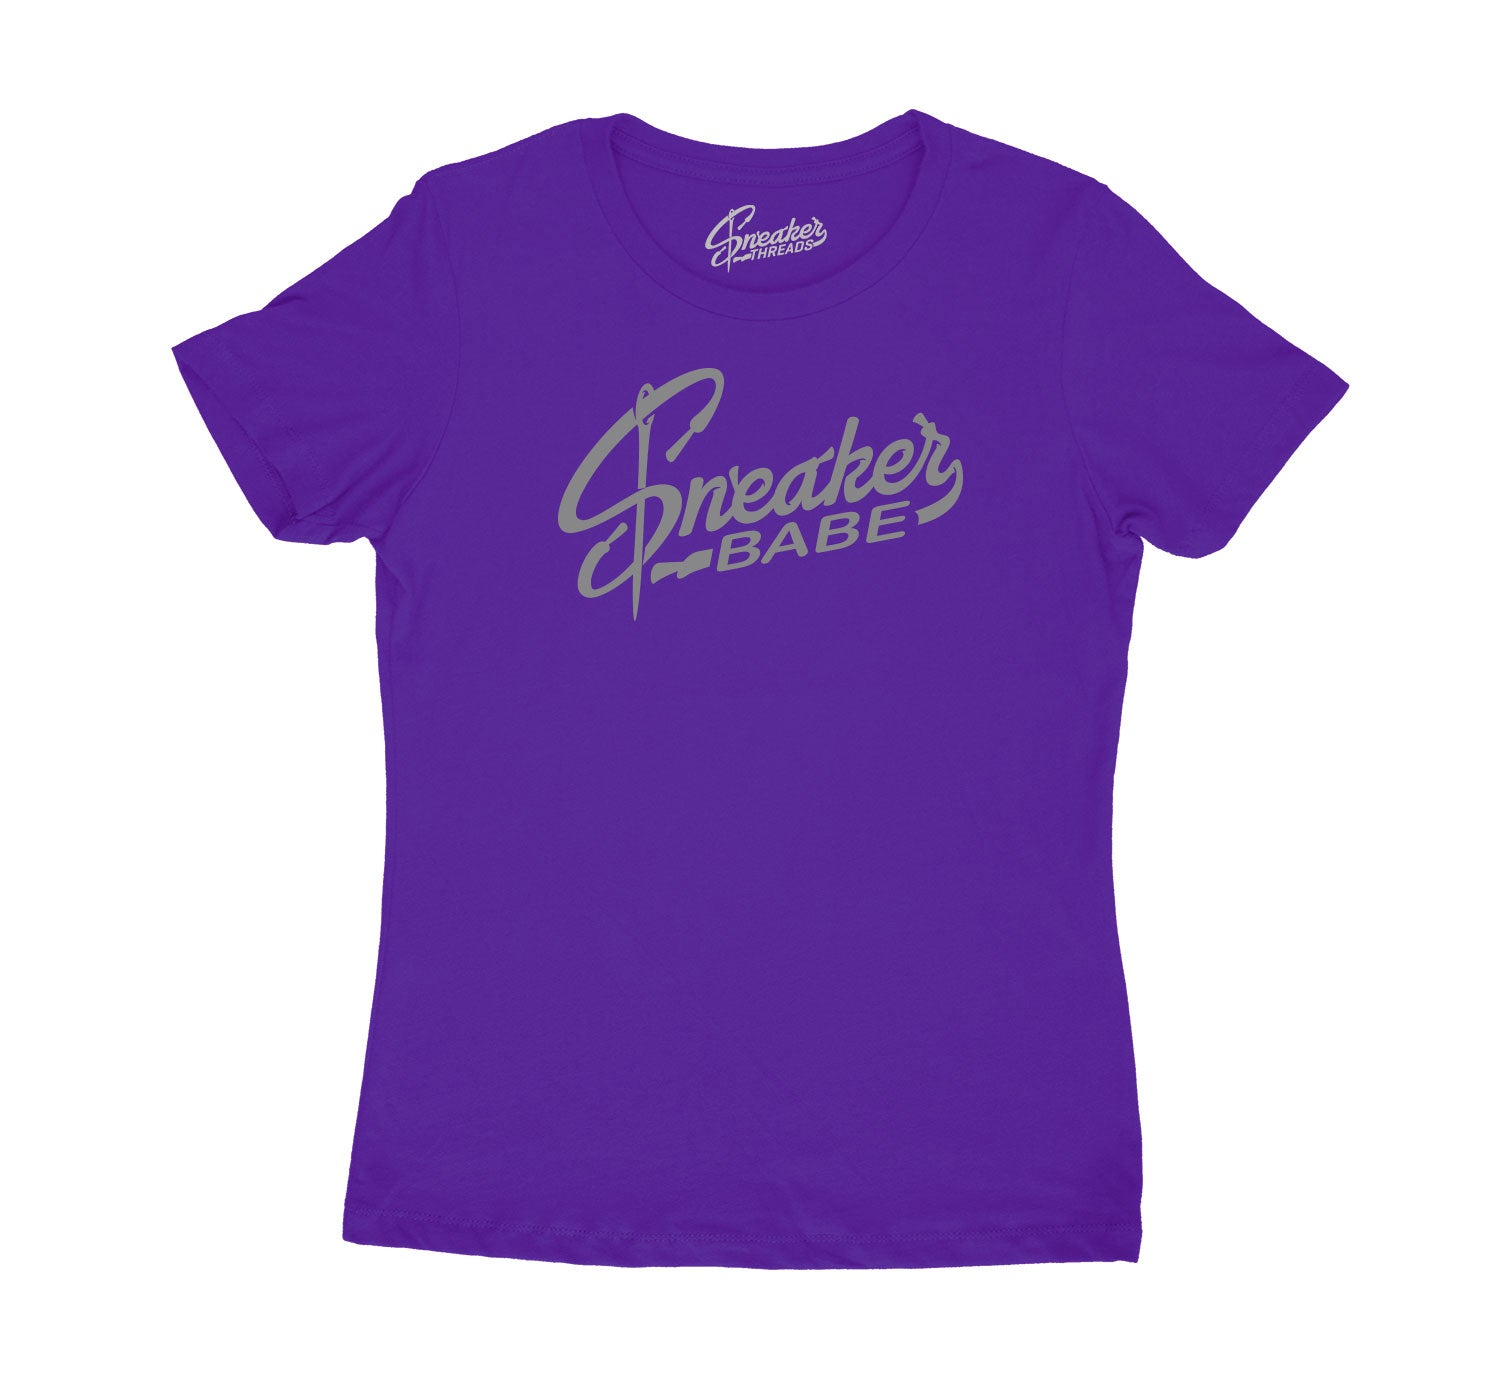 Womens Mid 1 Unite Shirt - Sneaker Babe - Purple